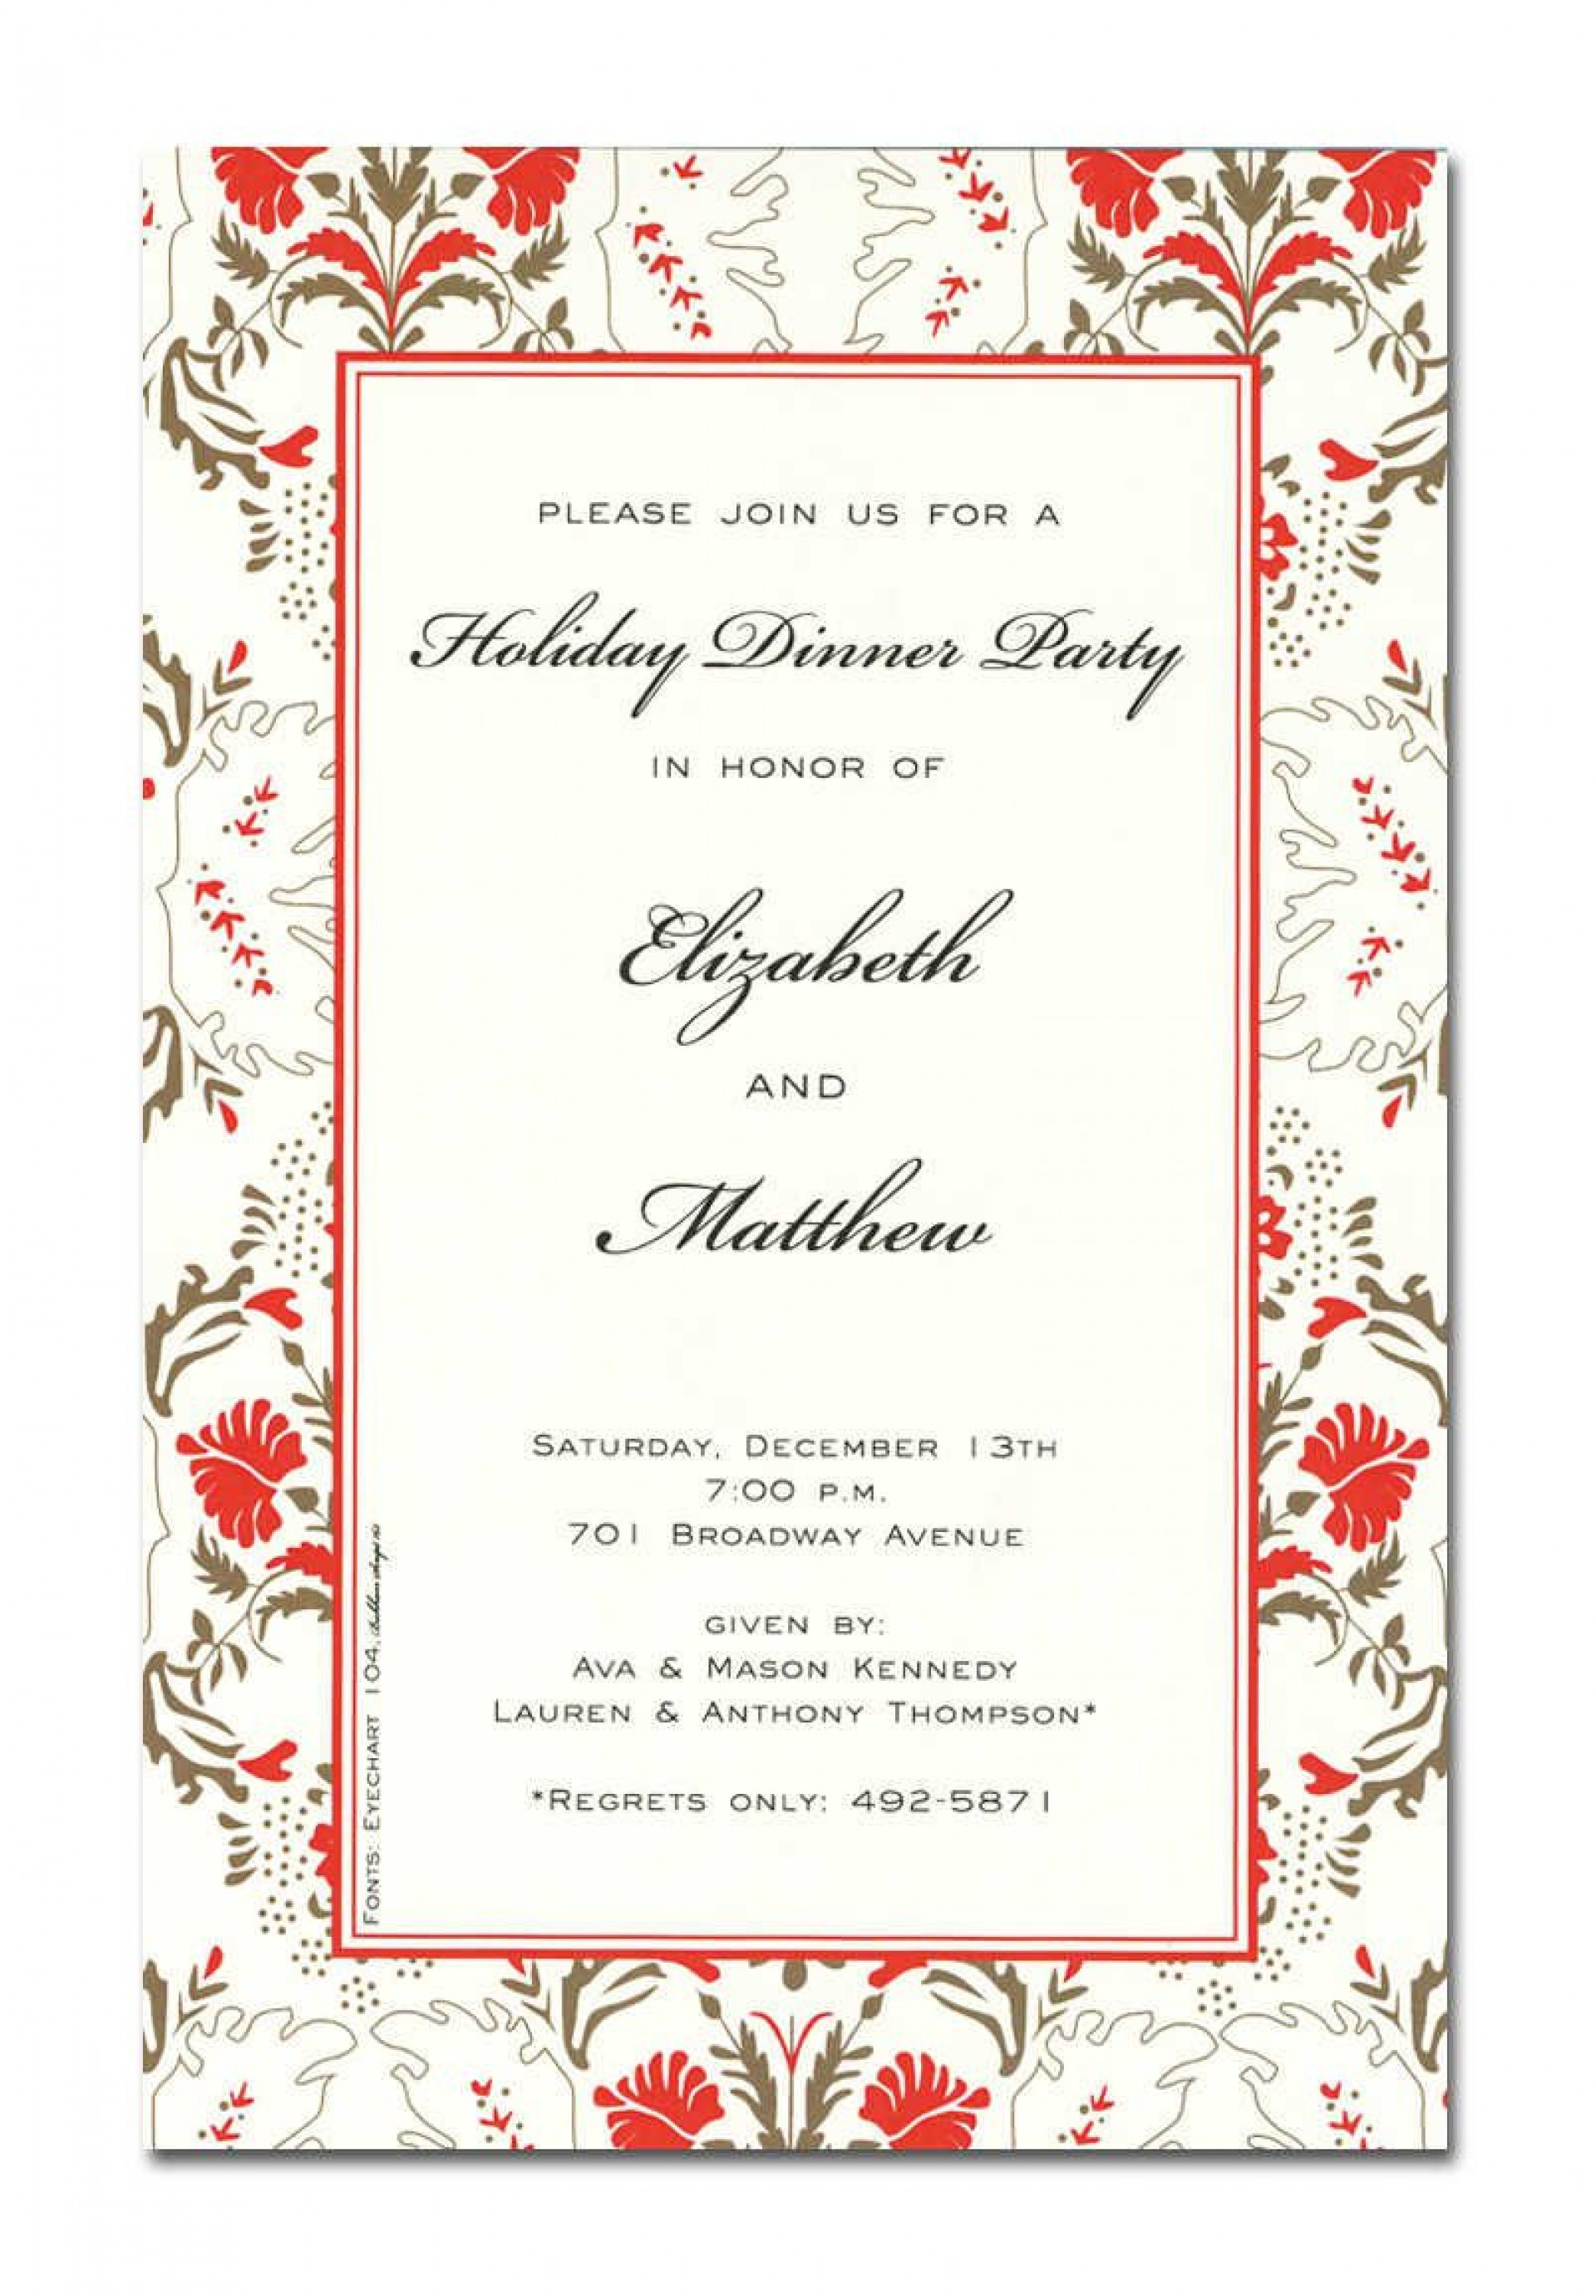 009 Outstanding Holiday Open House Invitation Template High Def  Christma Free Printable Wording Idea1920